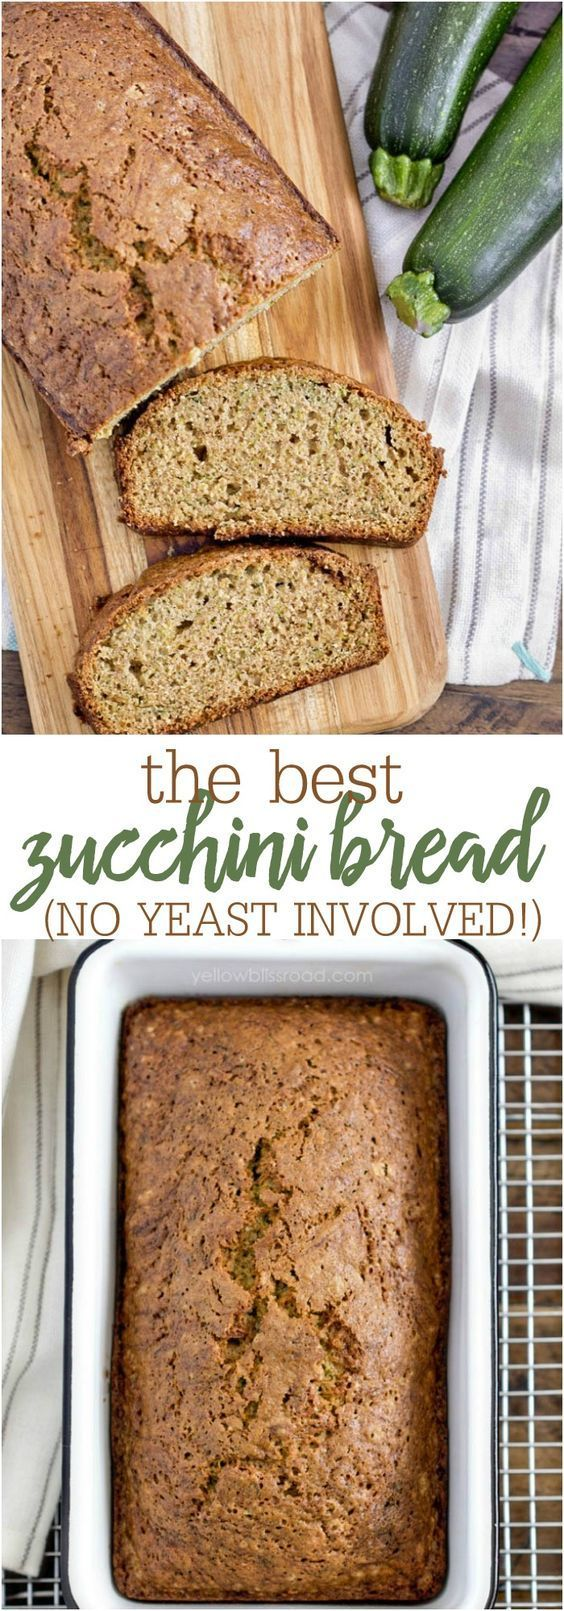 The BEST Zucchini Bread - so simple, flavorful and delicious. PLUS, no yeast involved!!!